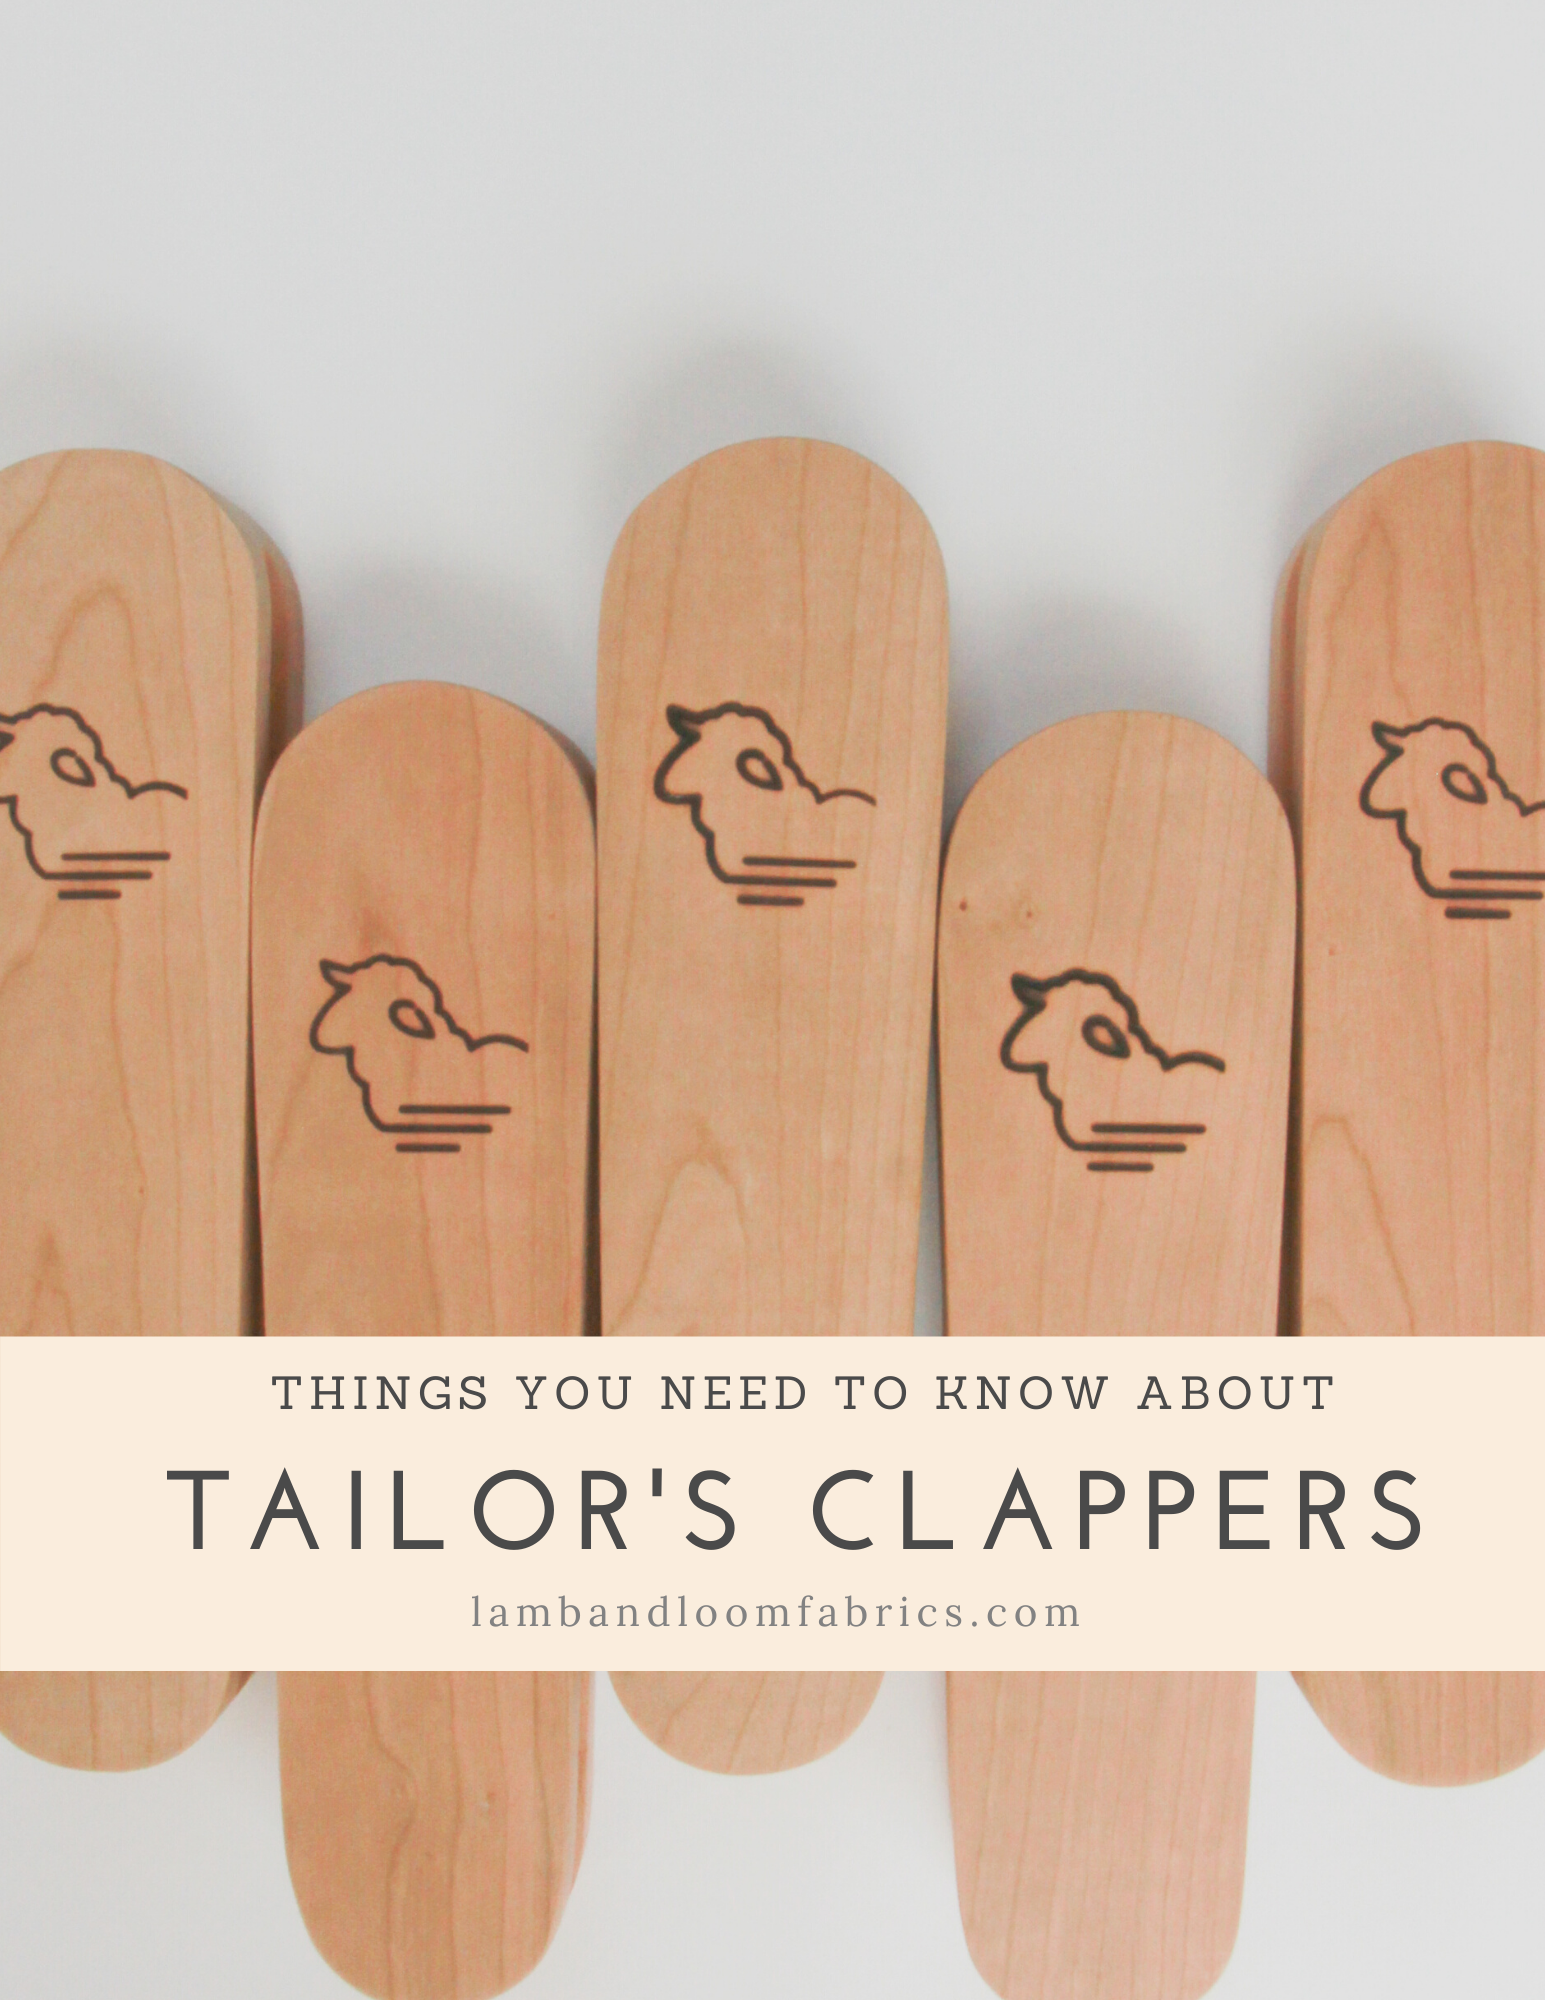 Things you need to know about Tailor's Clappers